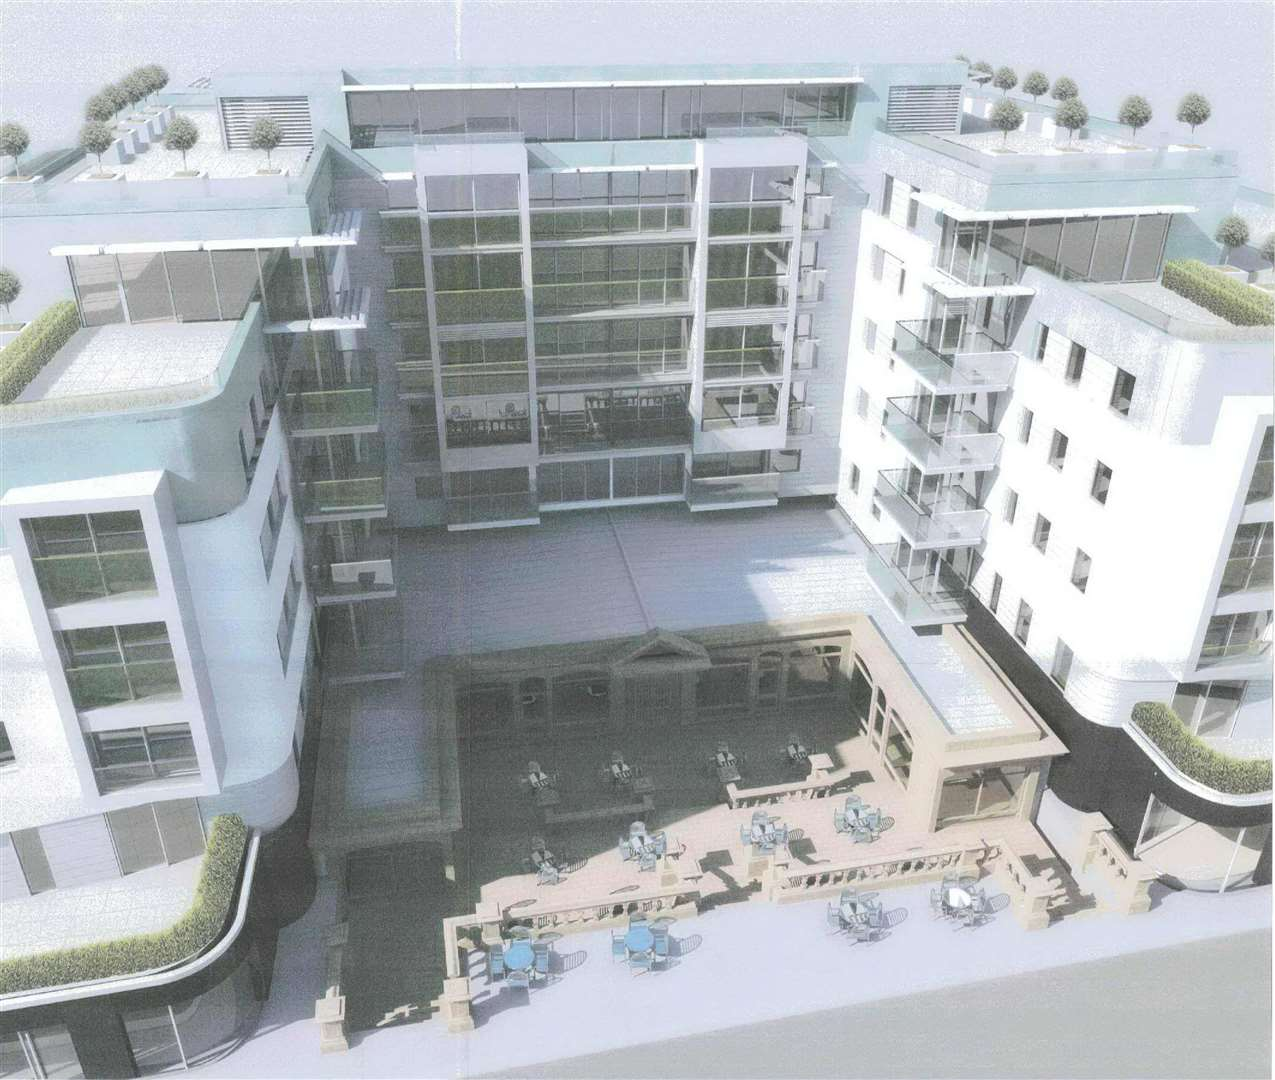 An artist's impression of the redevelopment around the Leas Pavilion: Courtesy Churchgate